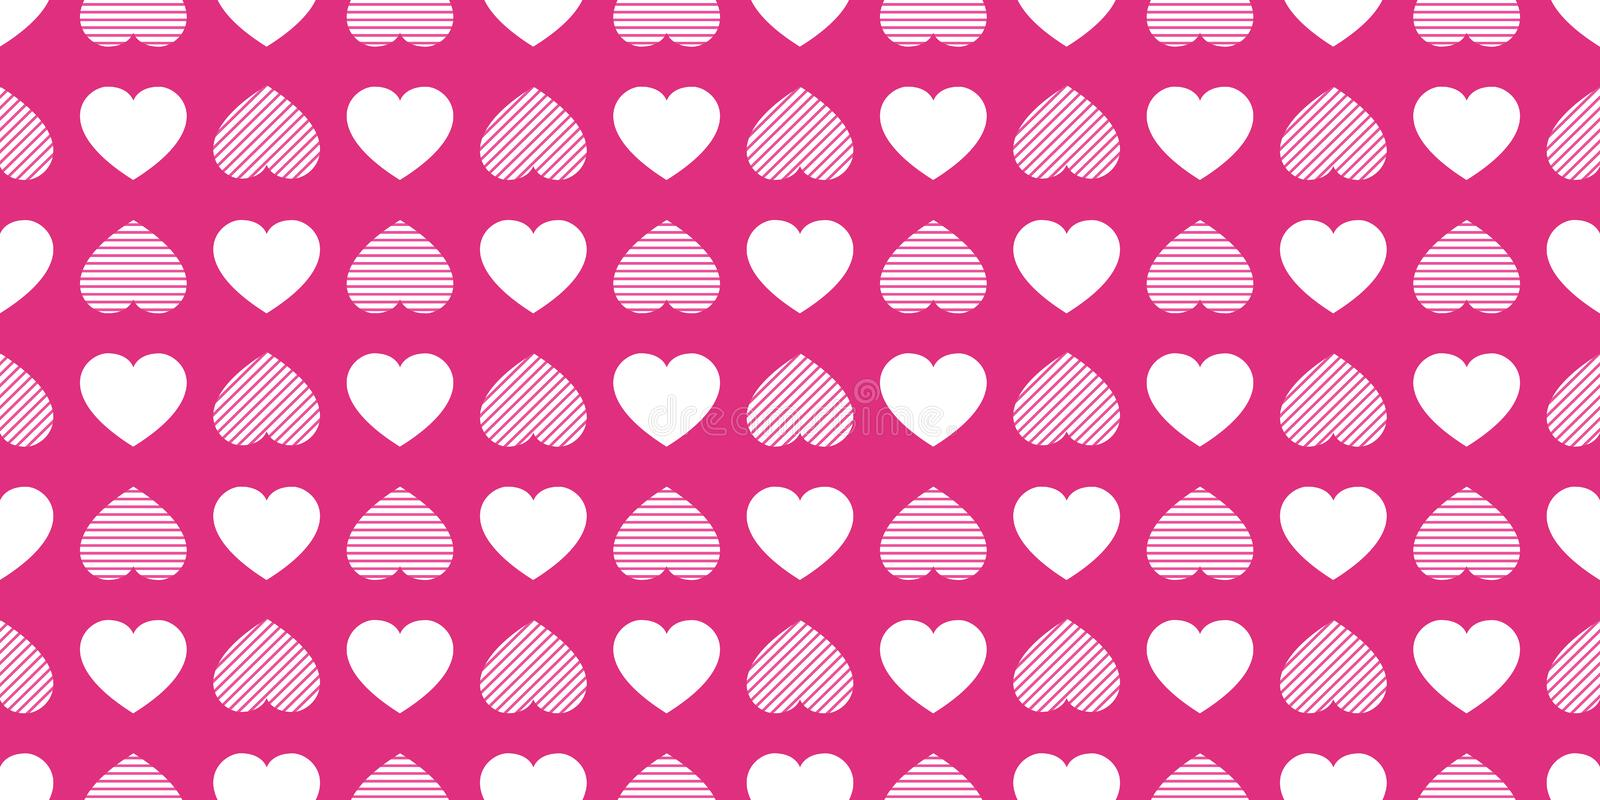 Love hearts repeated texture. Saint Valentines Day vector background. Romantic seamless pattern for greeting cards, invitation and royalty free illustration